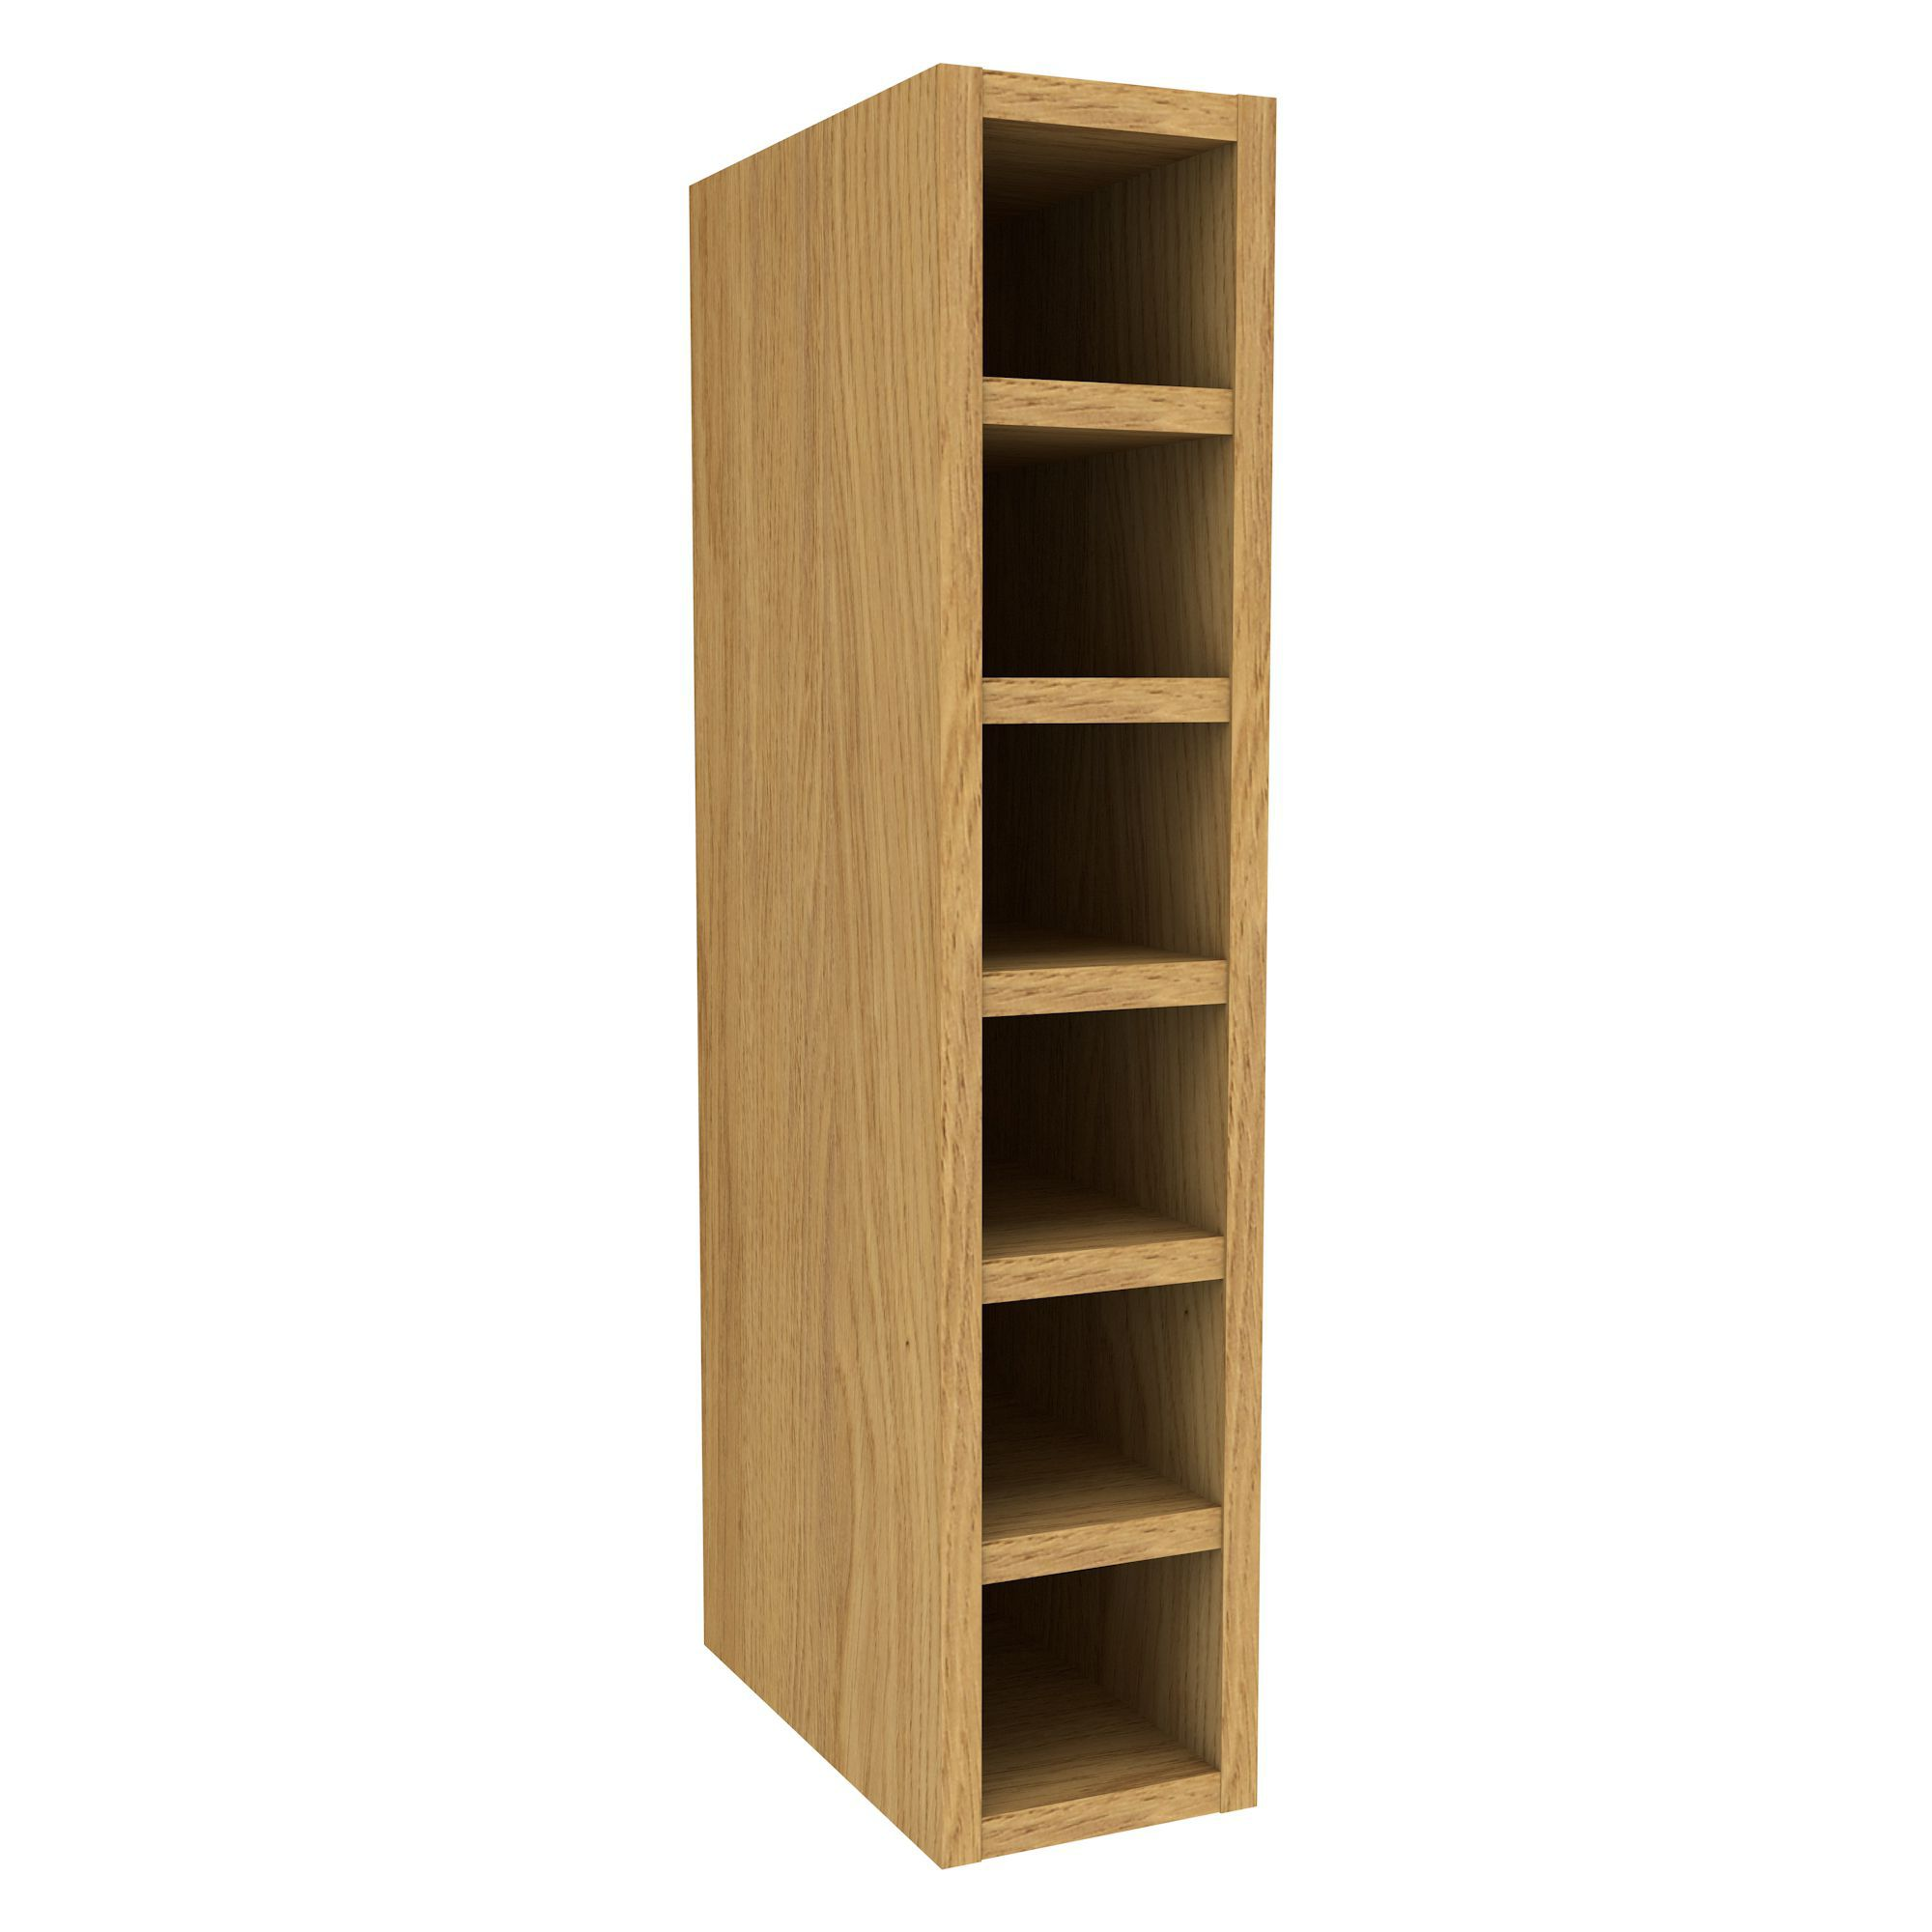 Oak Effect Kitchen Cabinets: Cooke & Lewis Oak Effect Wine Rack Wall Cabinet (W)150mm